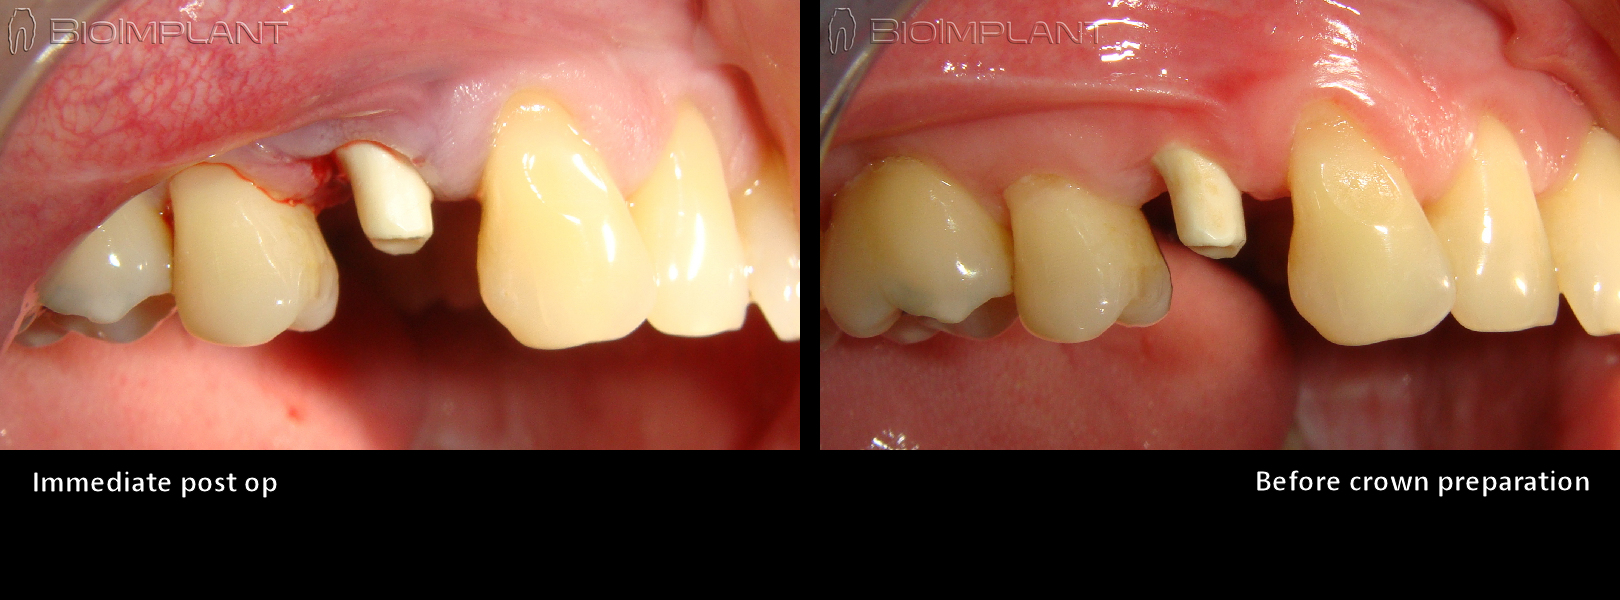 3 non-surgical implant placement immediate anatomical keramik sofortimplantat rai dental implant